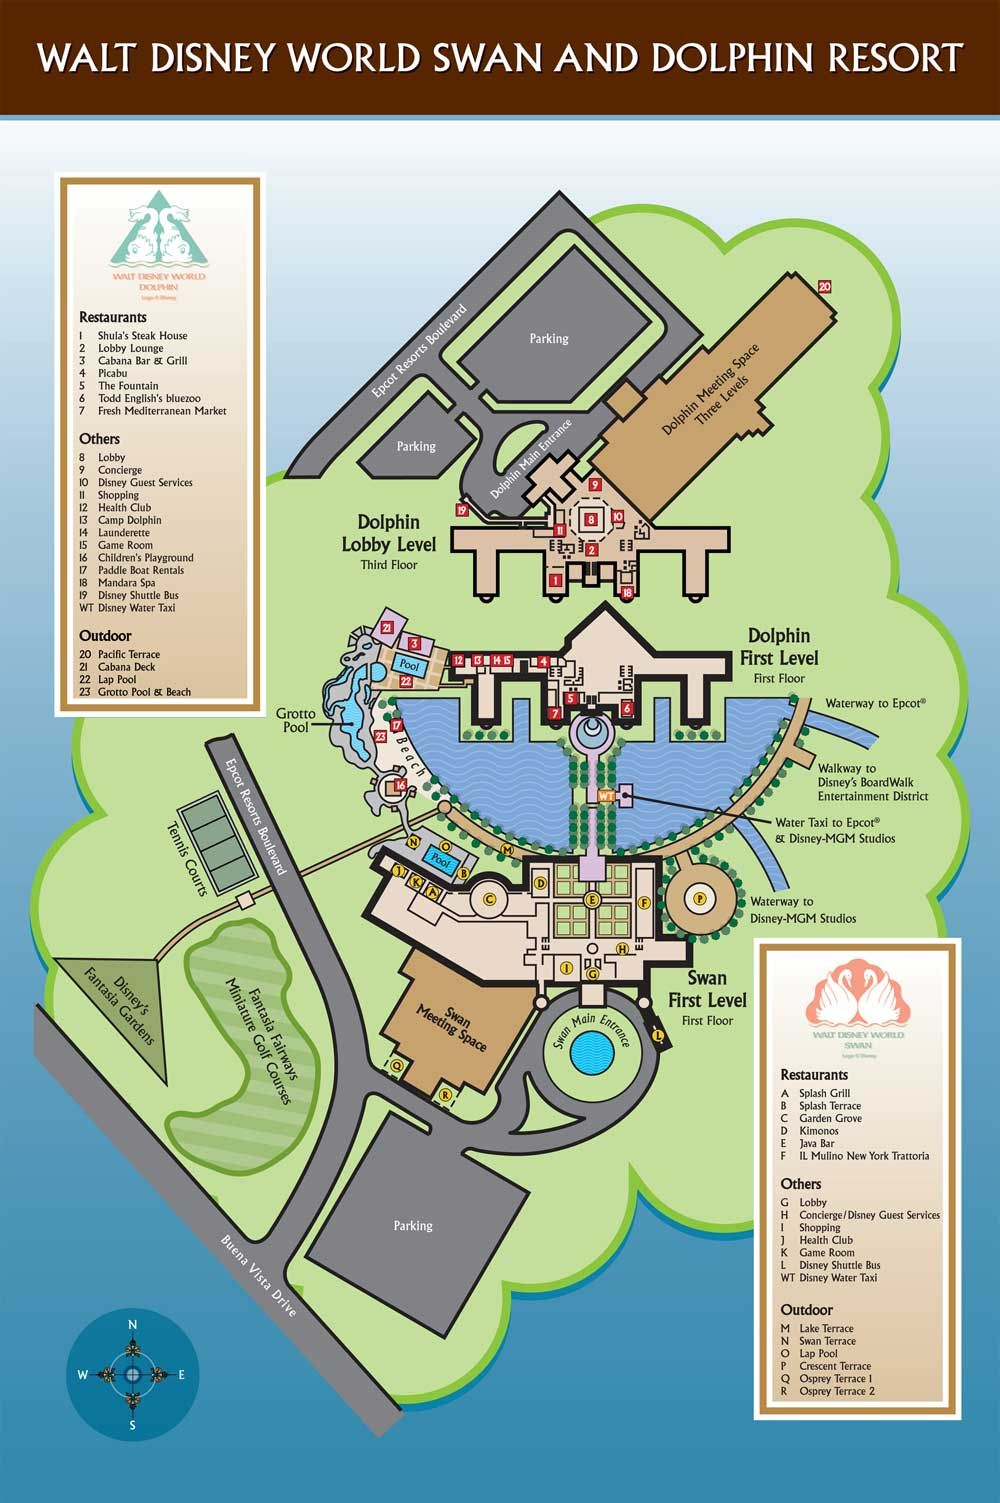 Walt Disney World Swan and Dolphin Hotel Map in 2019 ...